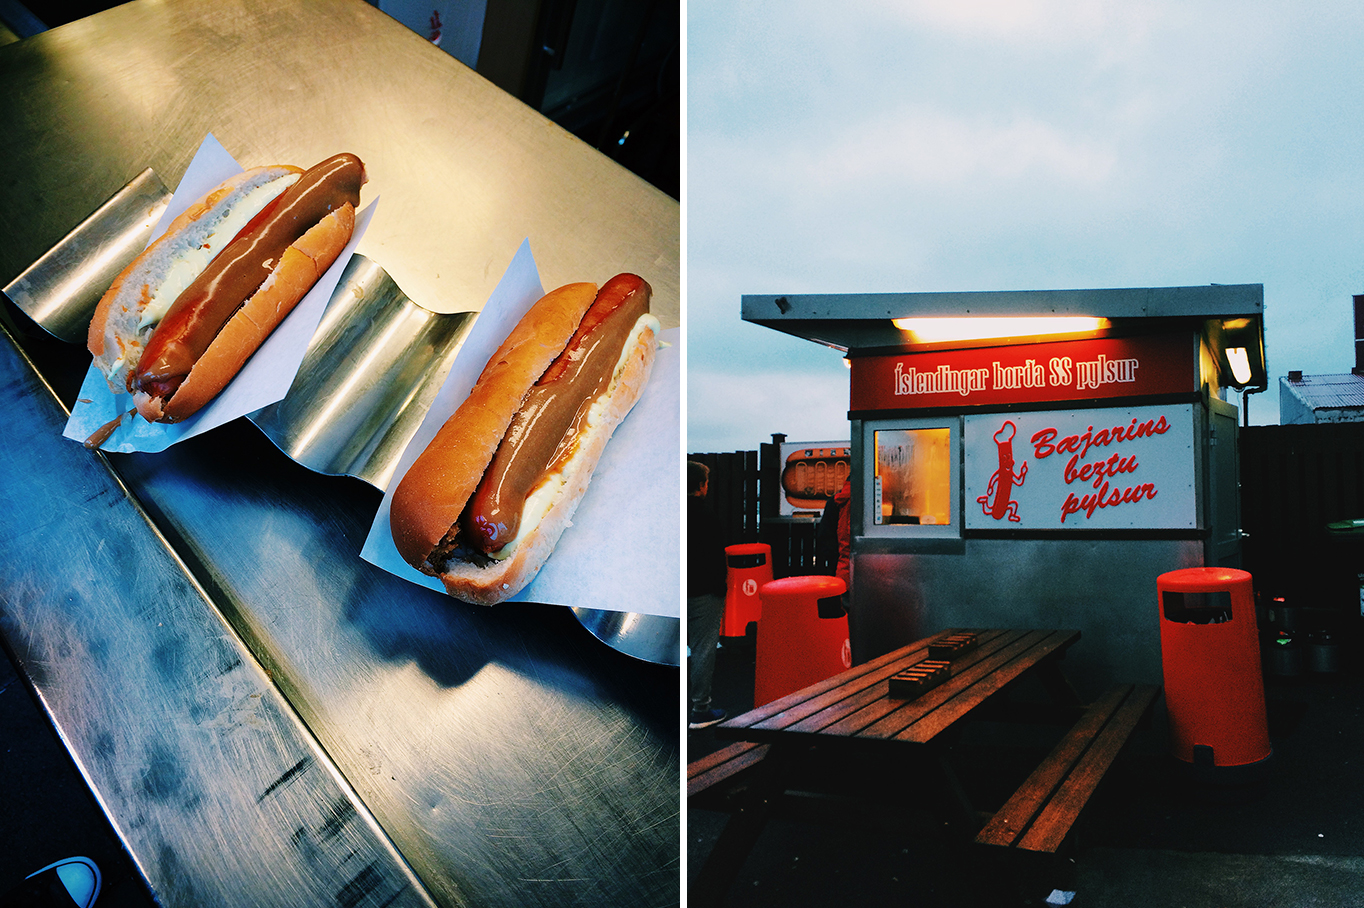 Baejarins Bezt Pylsur - the best hot dogs in town, Reykjavik